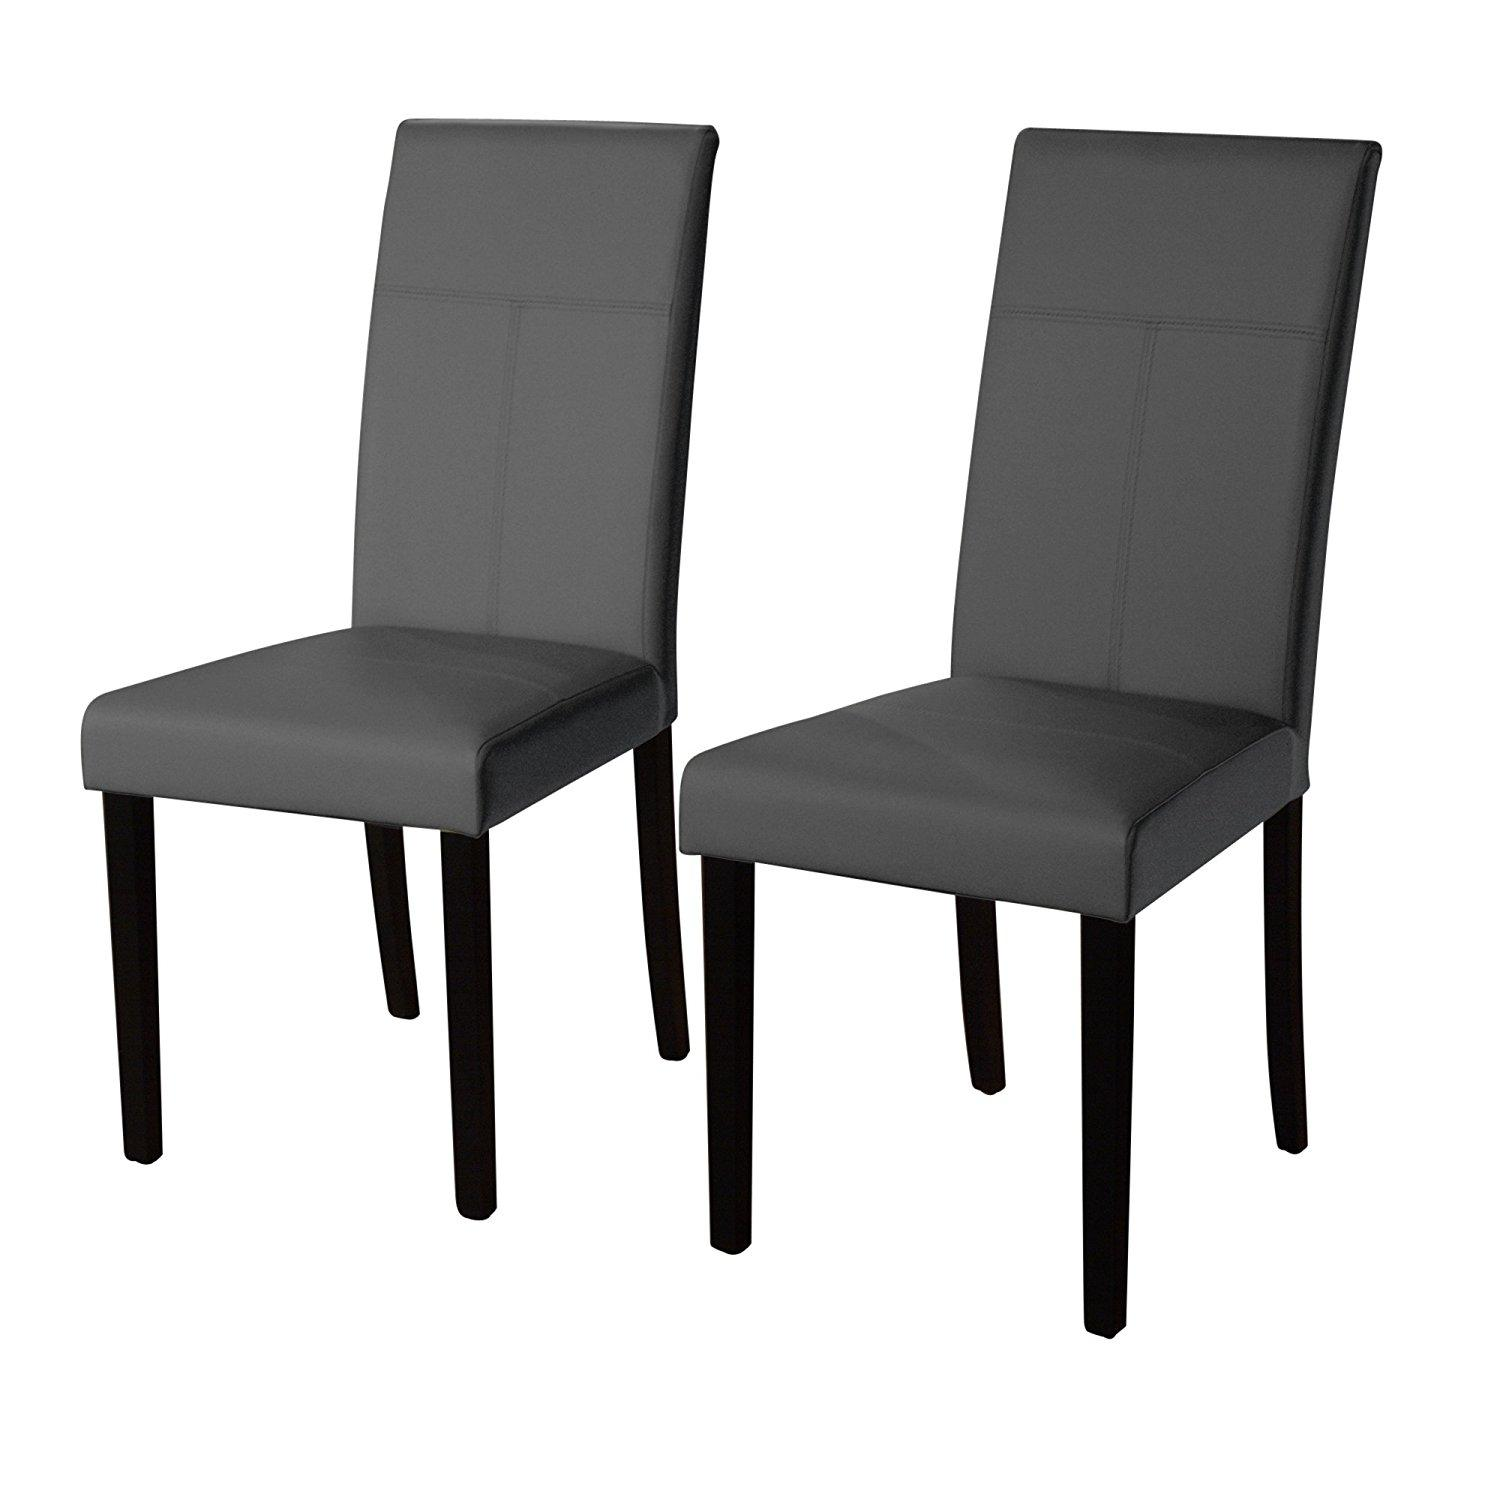 Target Dining Room Chairs: Amazon.com: Target Marketing Systems Set Of 2 Upholstered PU Leather Bettega Parsons Dining